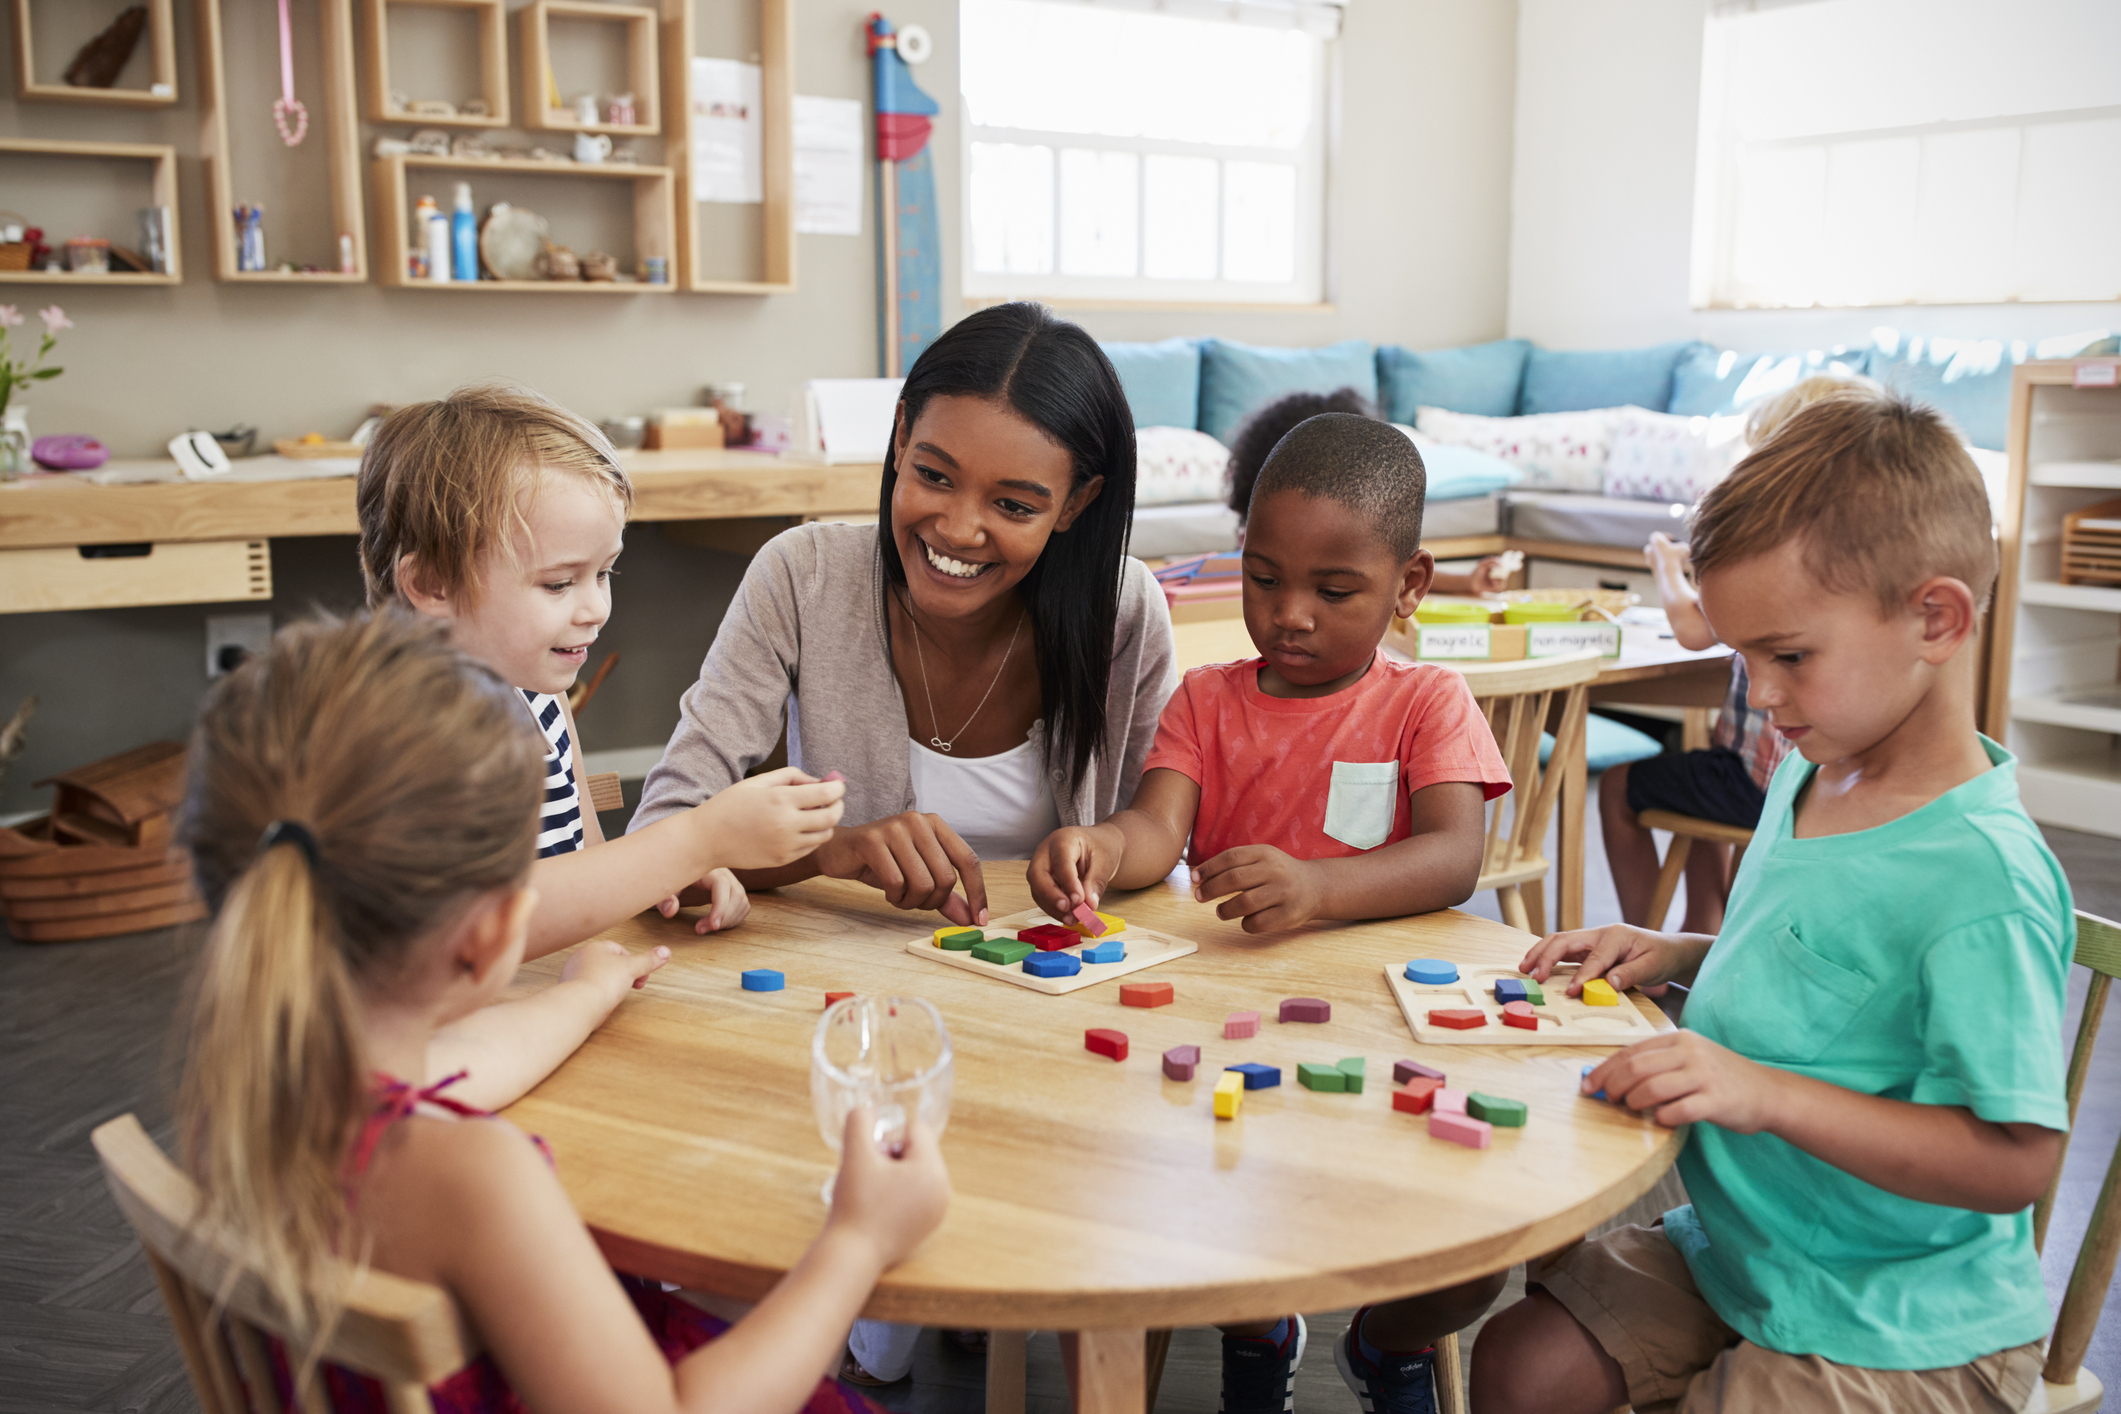 Place Your Child in Safe Hands of Day Care School